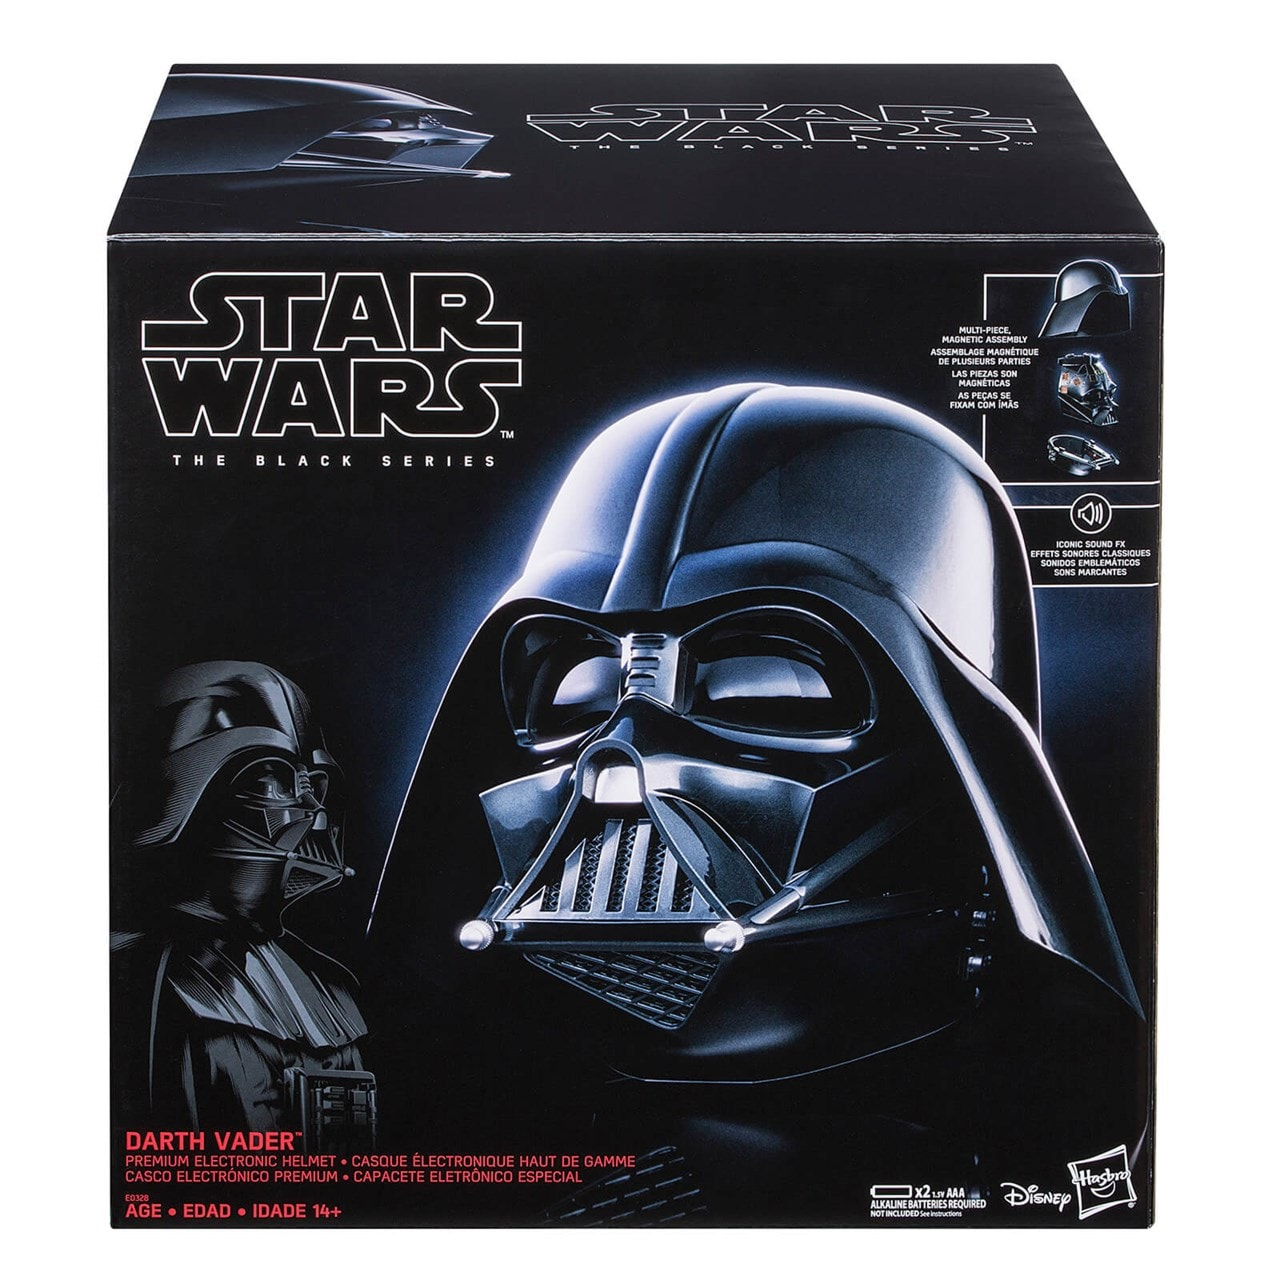 Darth Vader Electronic Helmet: Star Wars Black Series - 6